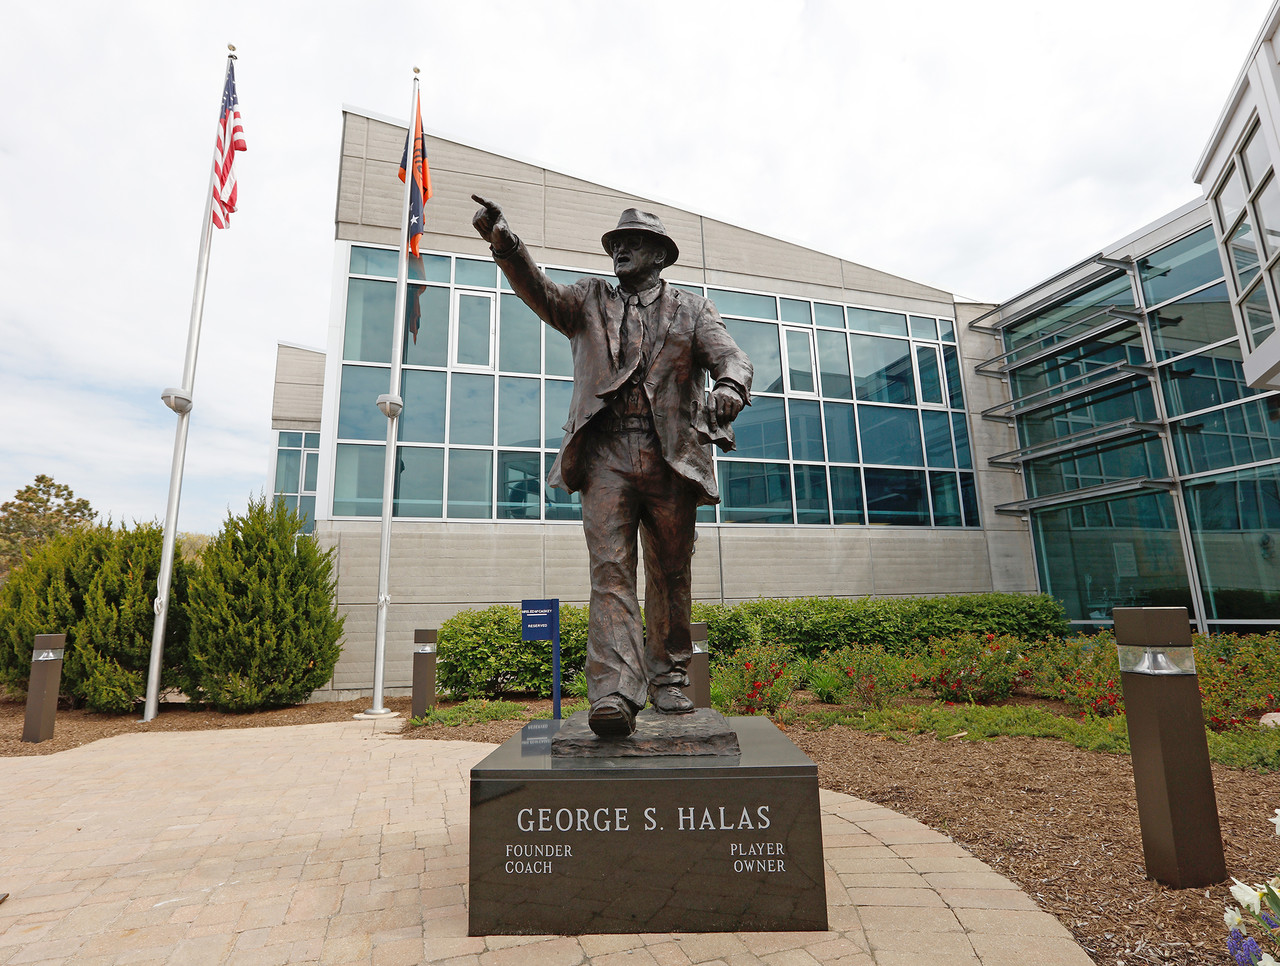 George Halas, Halas Hall in Lake Forest, Ill.